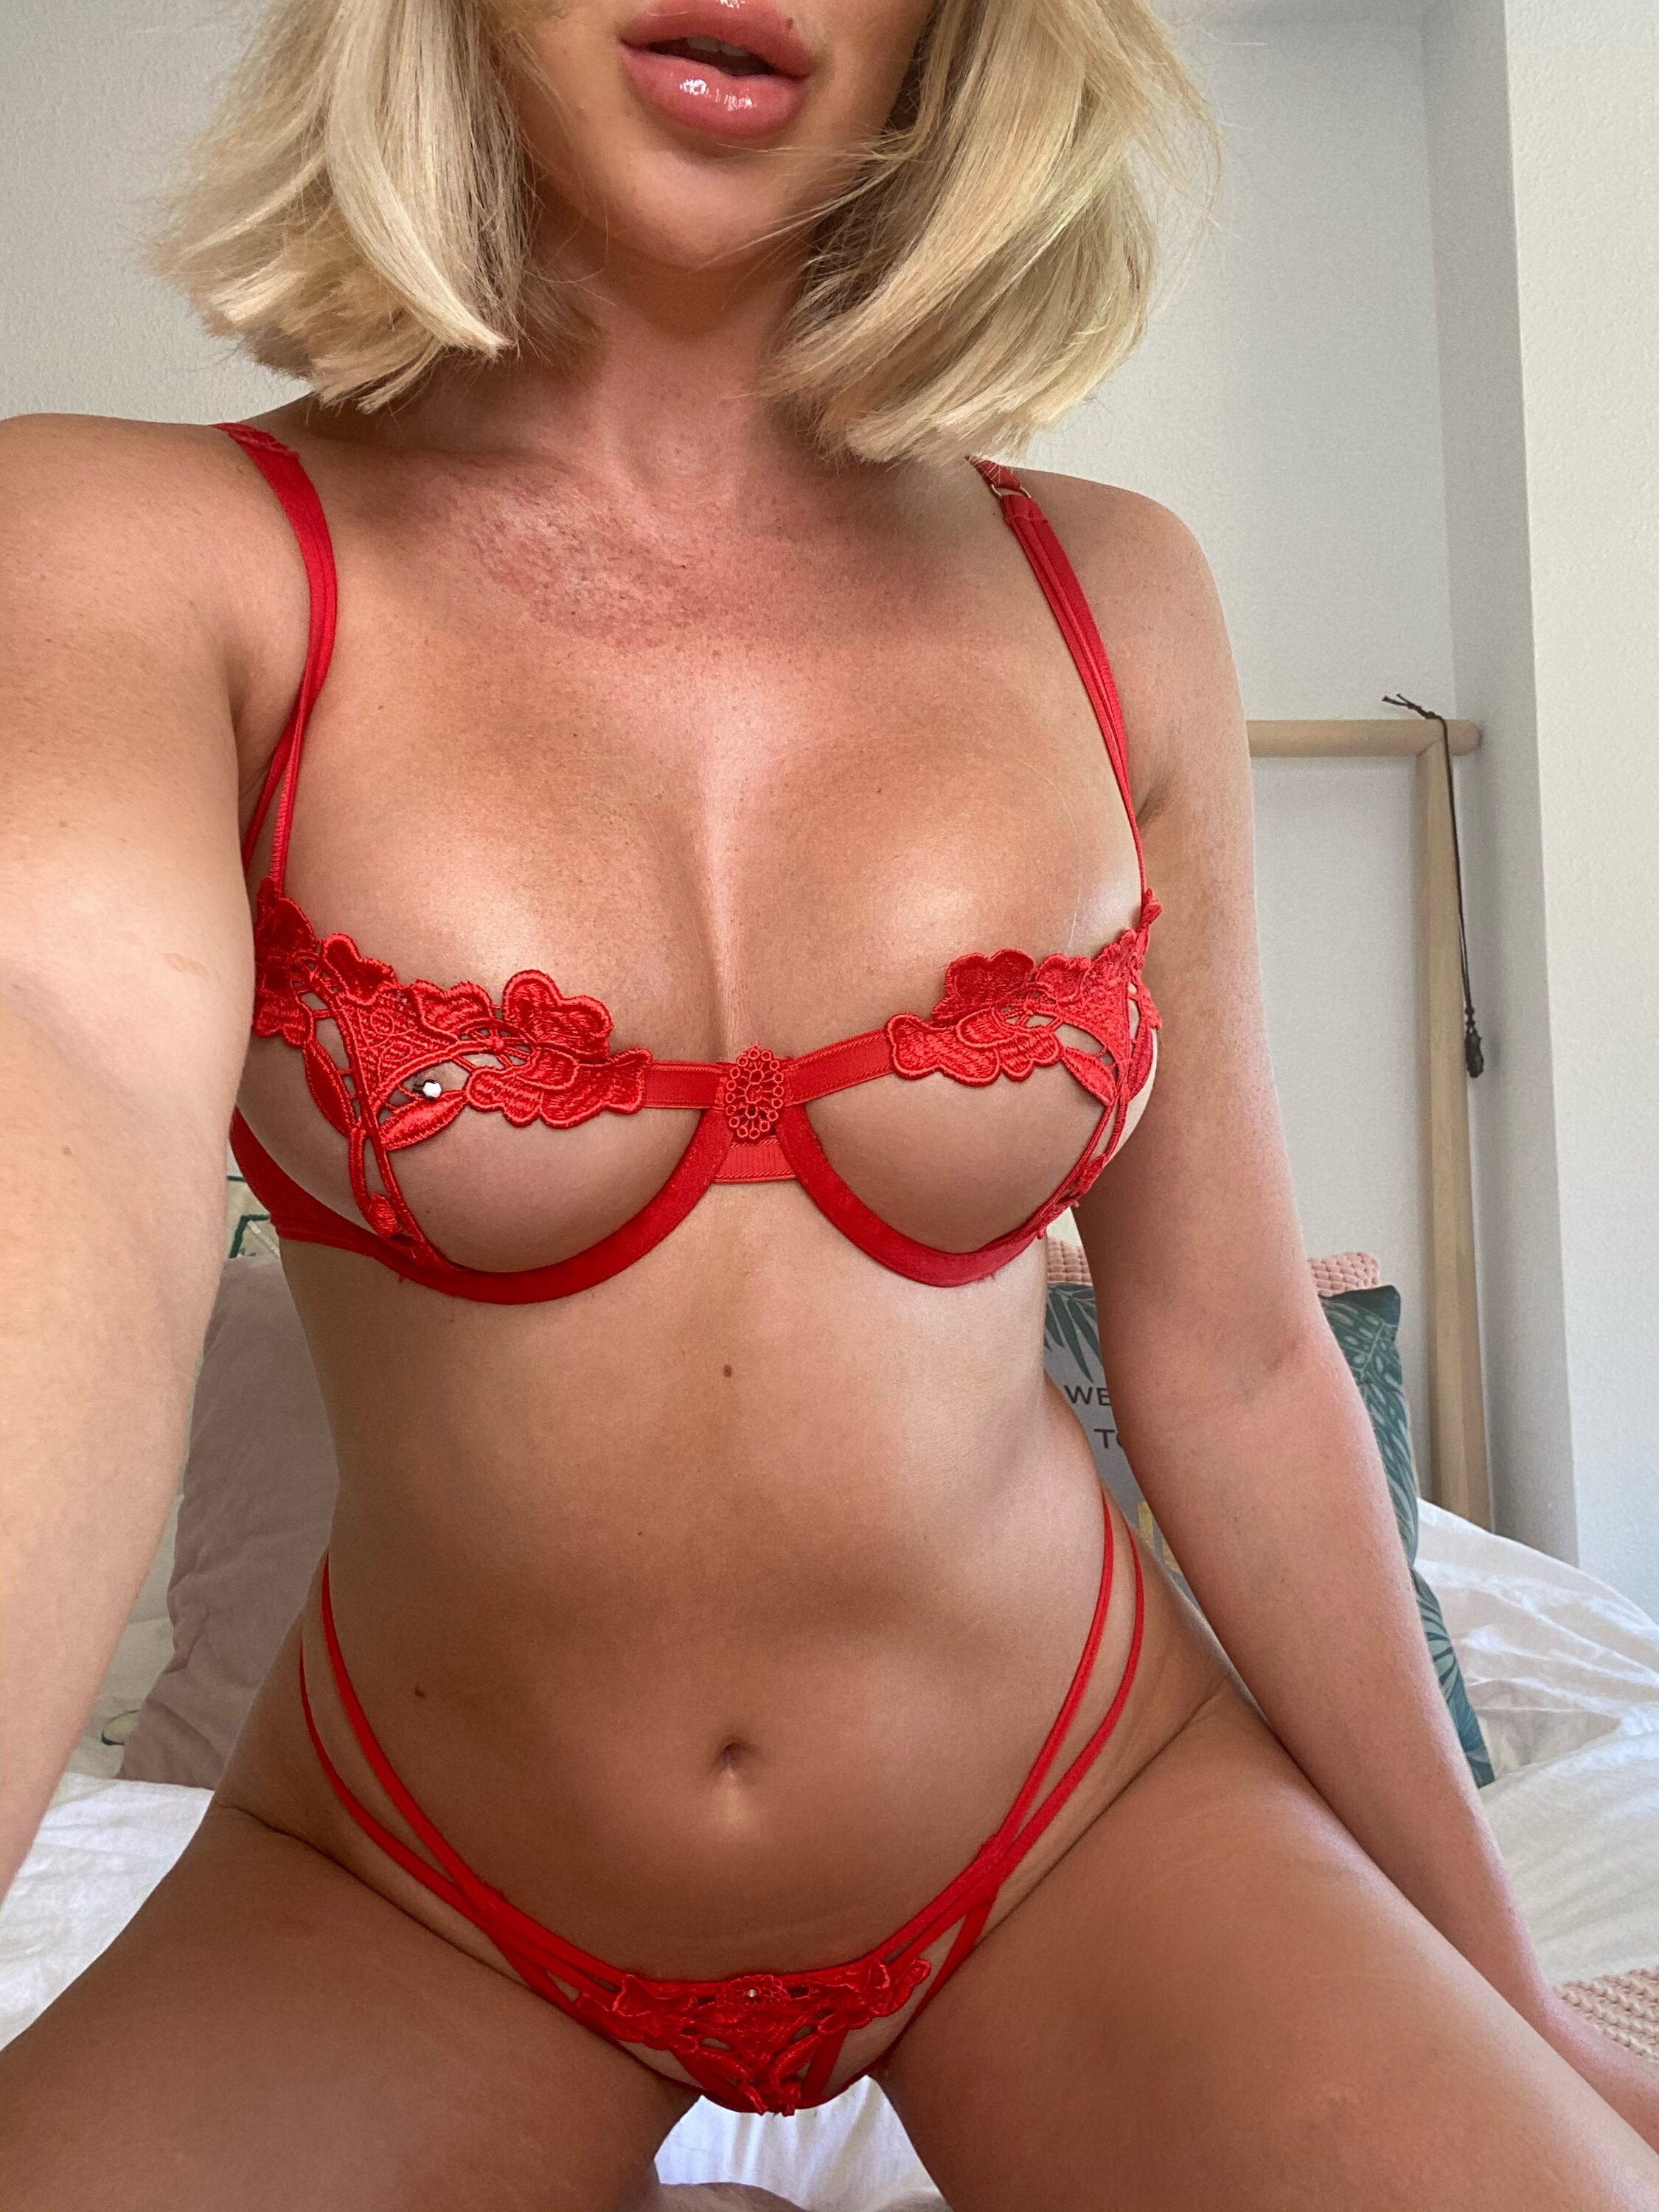 Georgia Crone Nude Leaked OnlyFans fappenings.com 105